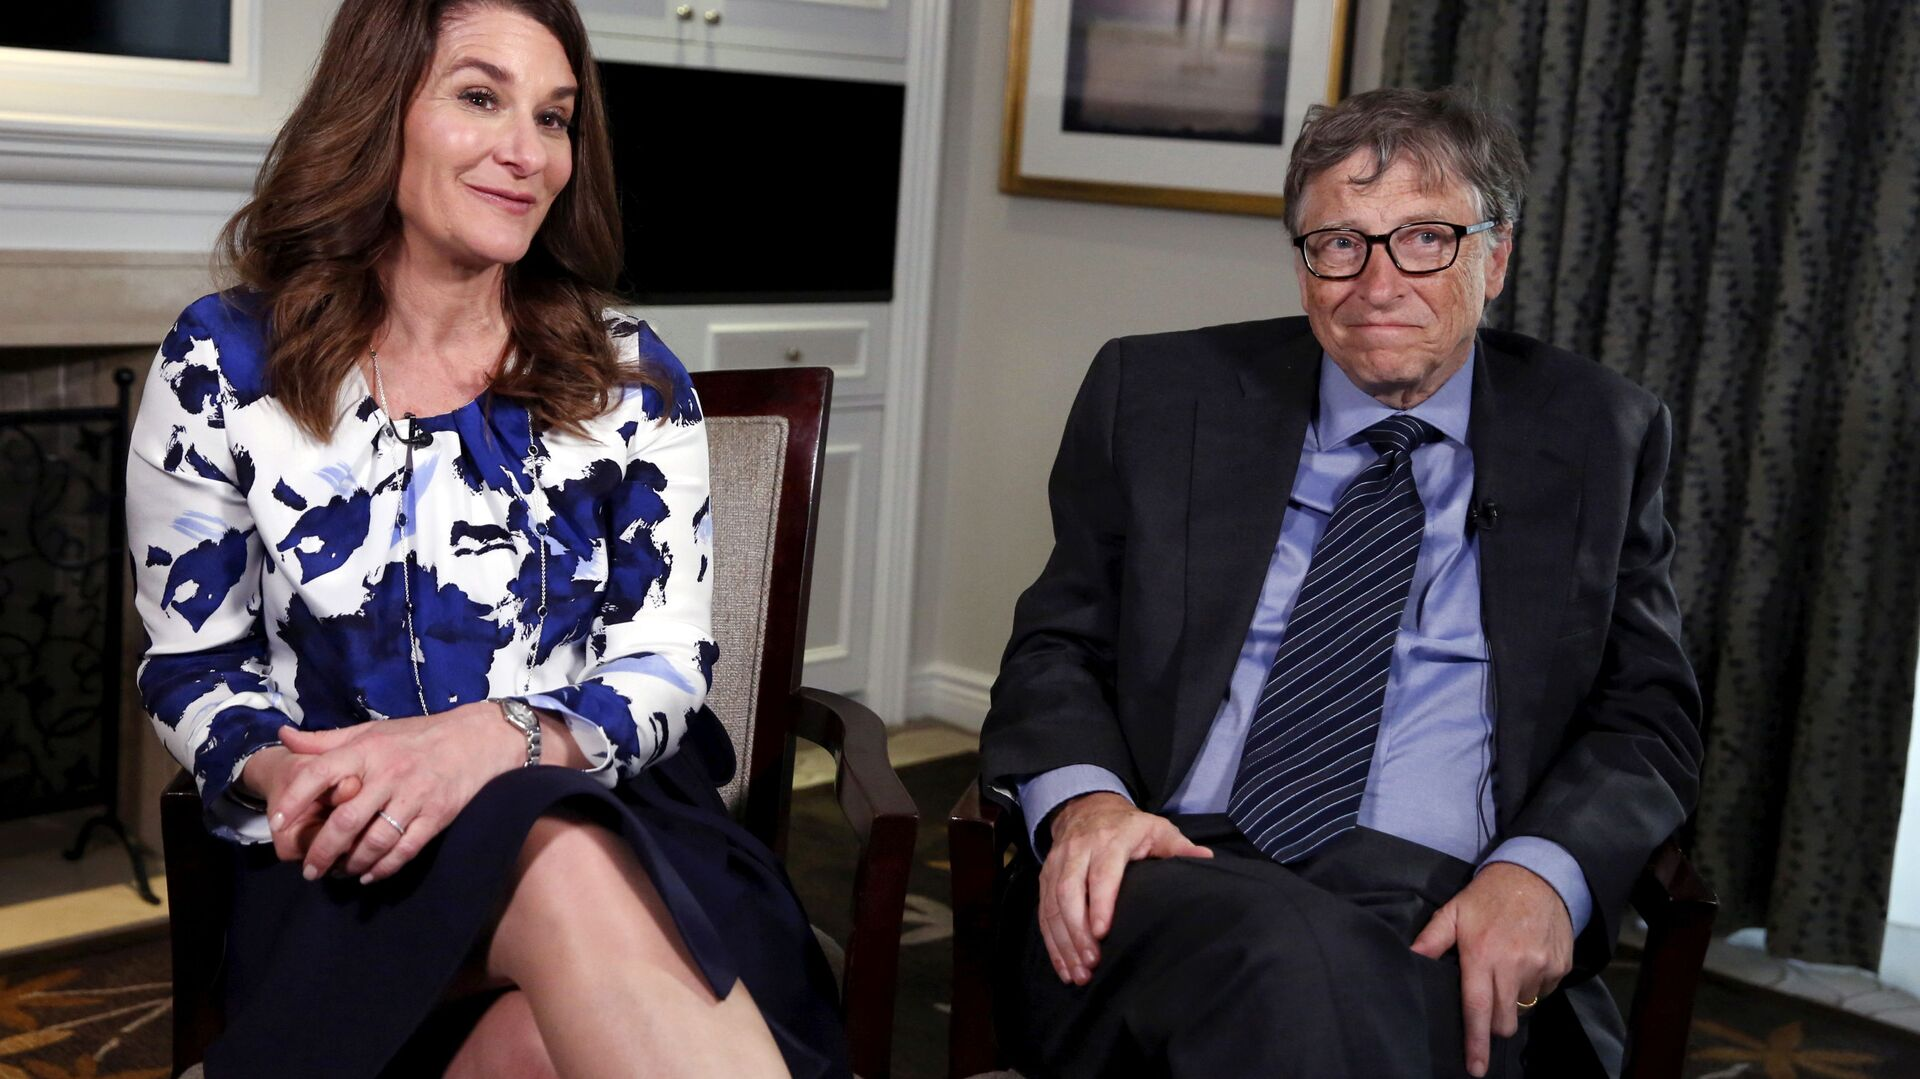 Microsoft co-founder Bill Gates and his wife Melinda sit during an interview in New York - Sputnik Italia, 1920, 07.05.2021